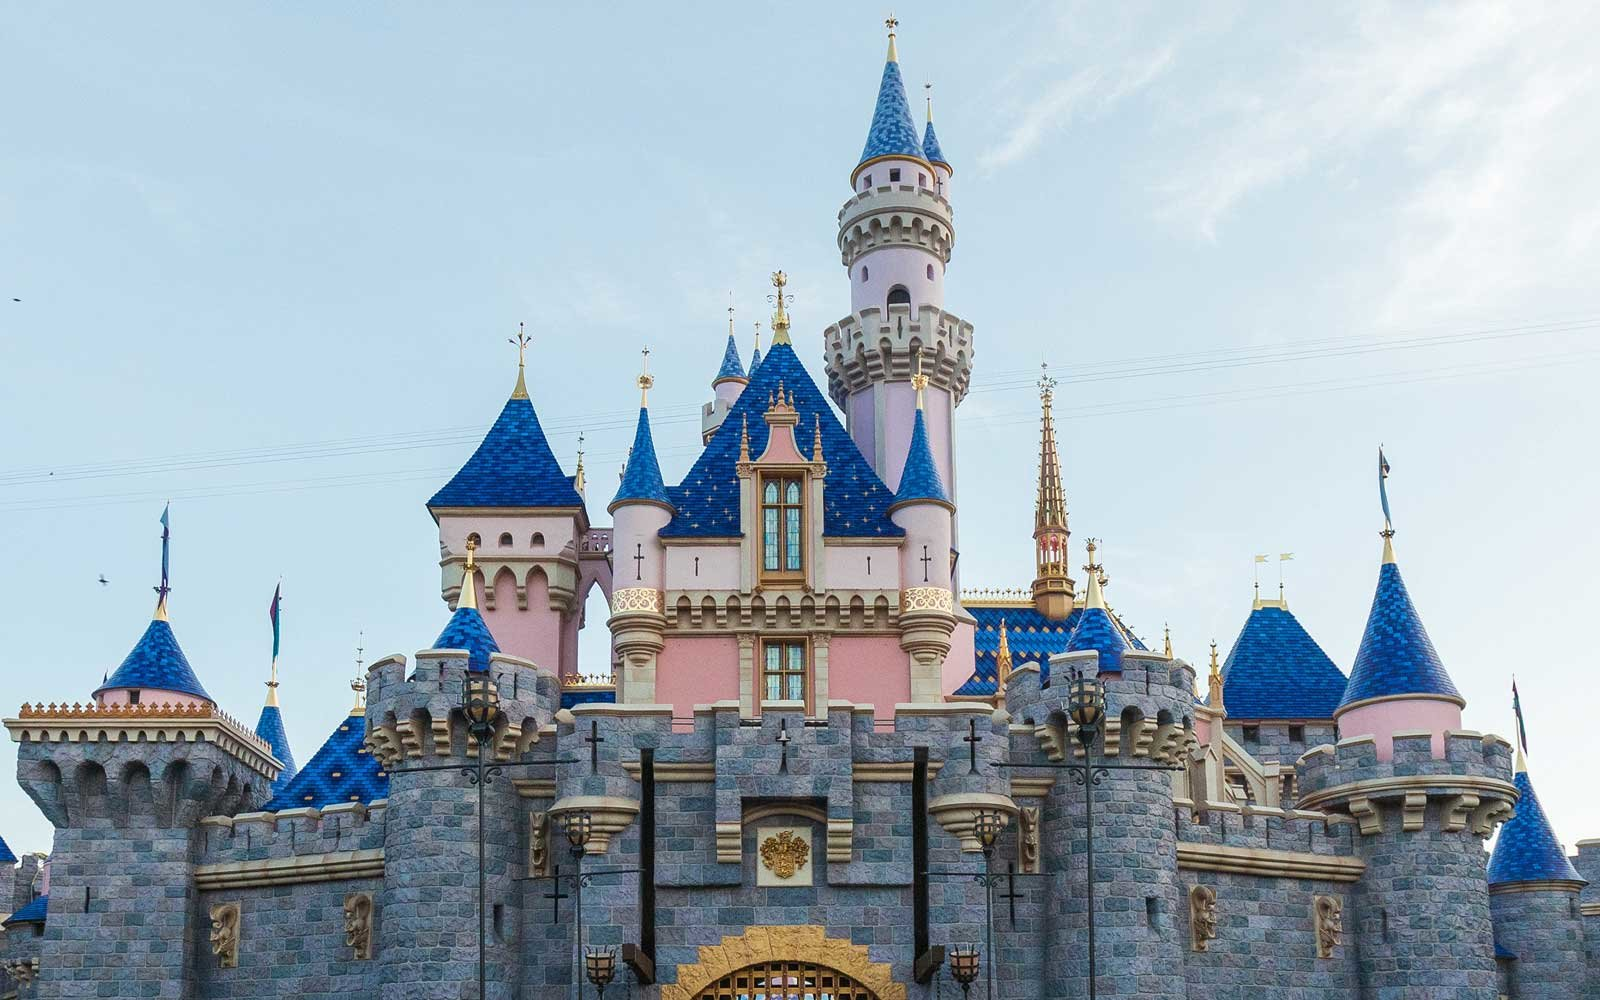 Sleeping Beauty's Castle Got a Bright, Colorful Makeover — Complete With Pixie Dust